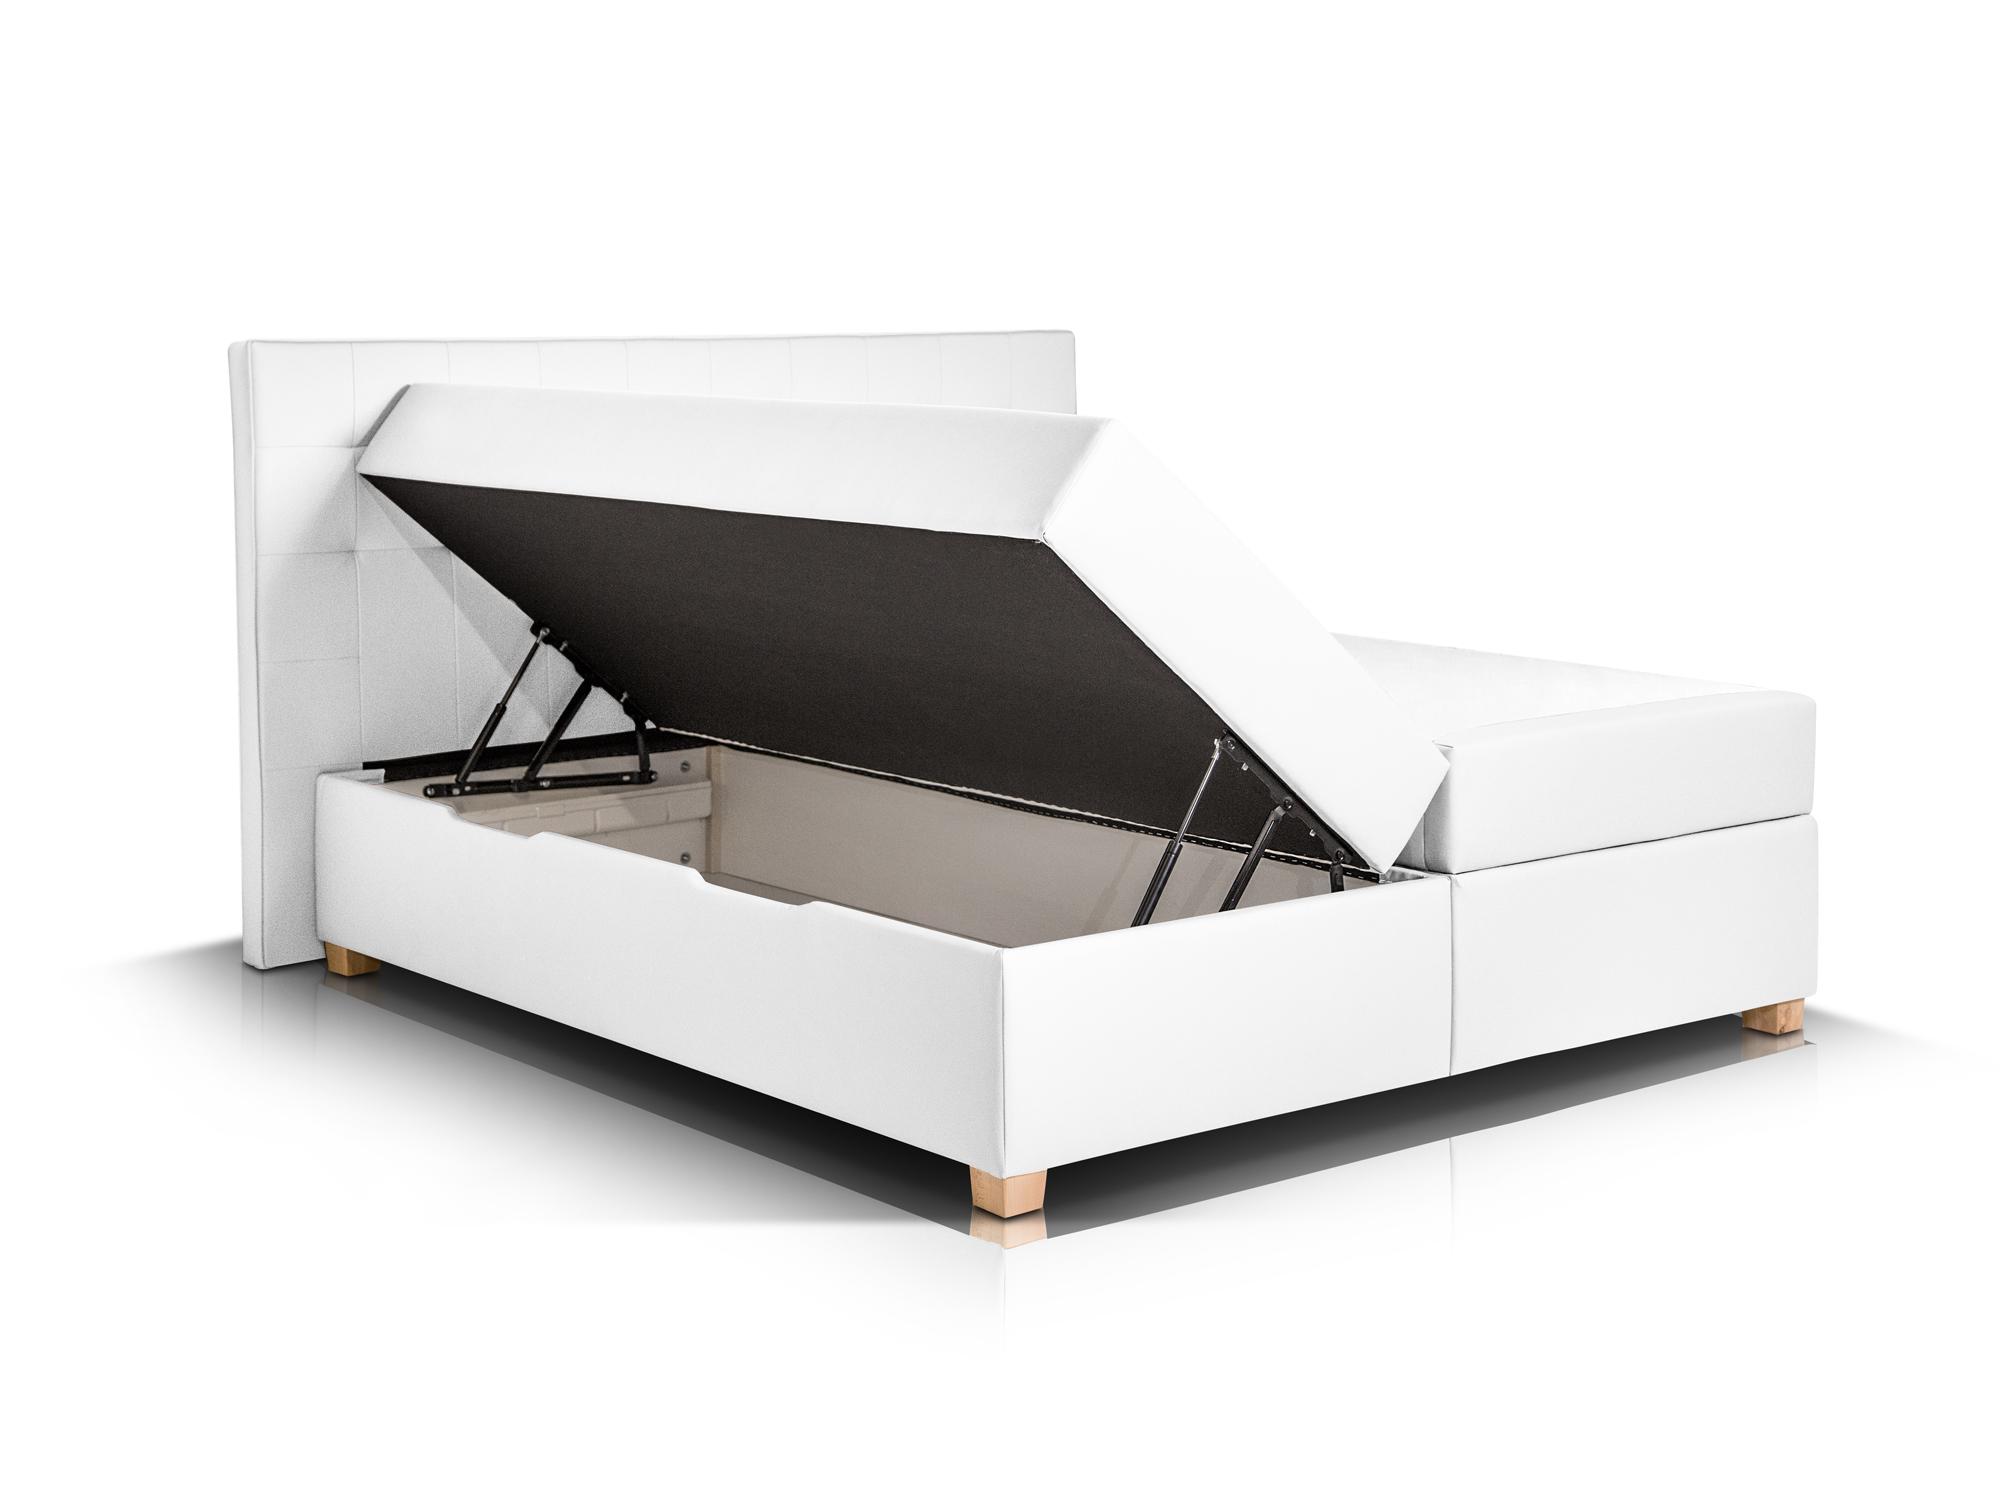 ida boxspringbett kunstleder mit bettkasten 160 x 200 cm weiss h rtegrad 2. Black Bedroom Furniture Sets. Home Design Ideas